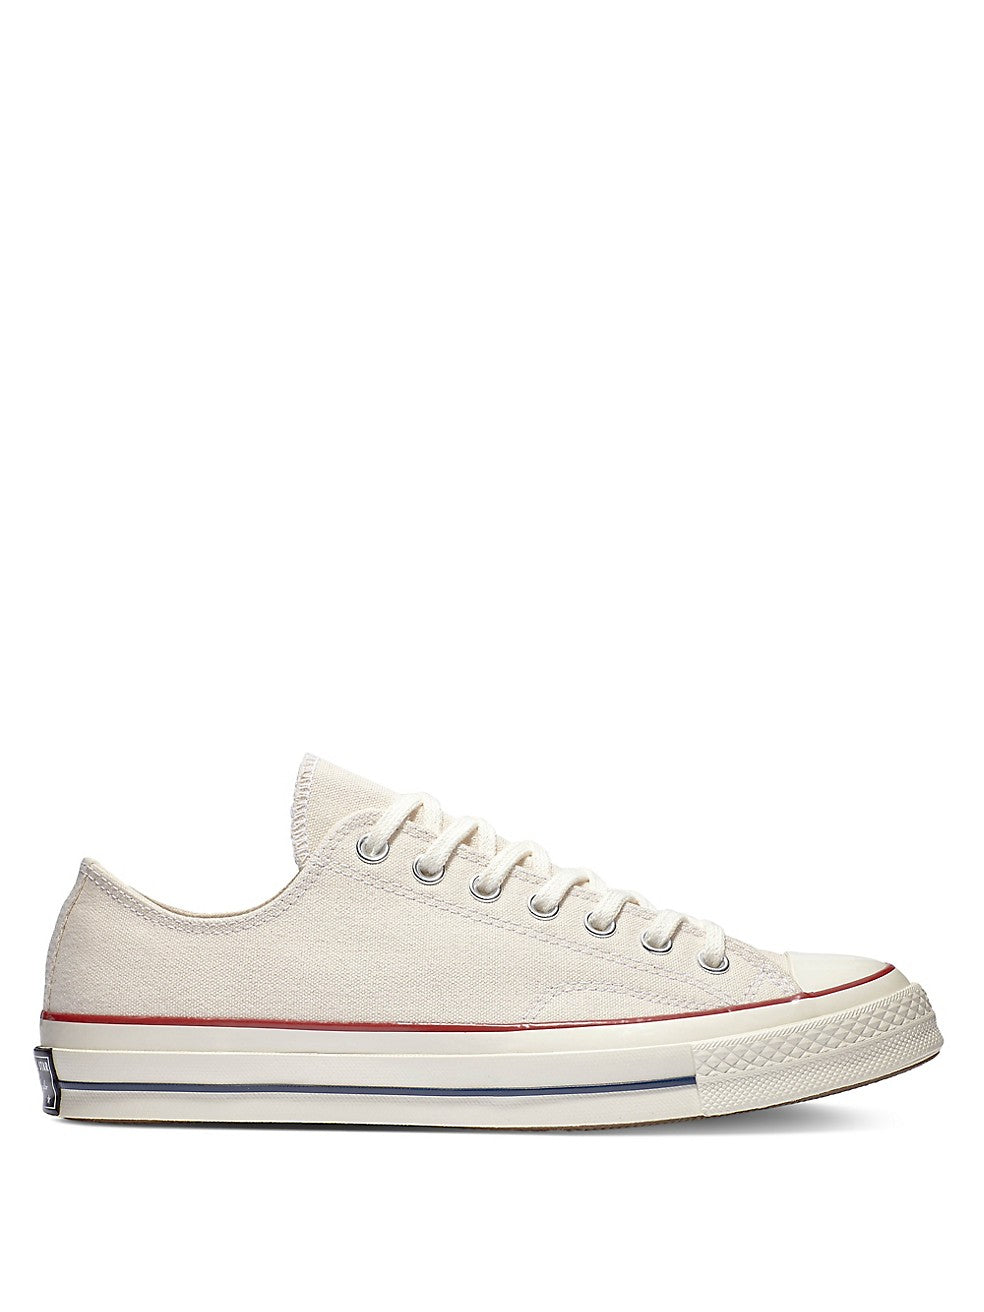 Vintage Canvas Chuck 70 Low-Top Sneakers